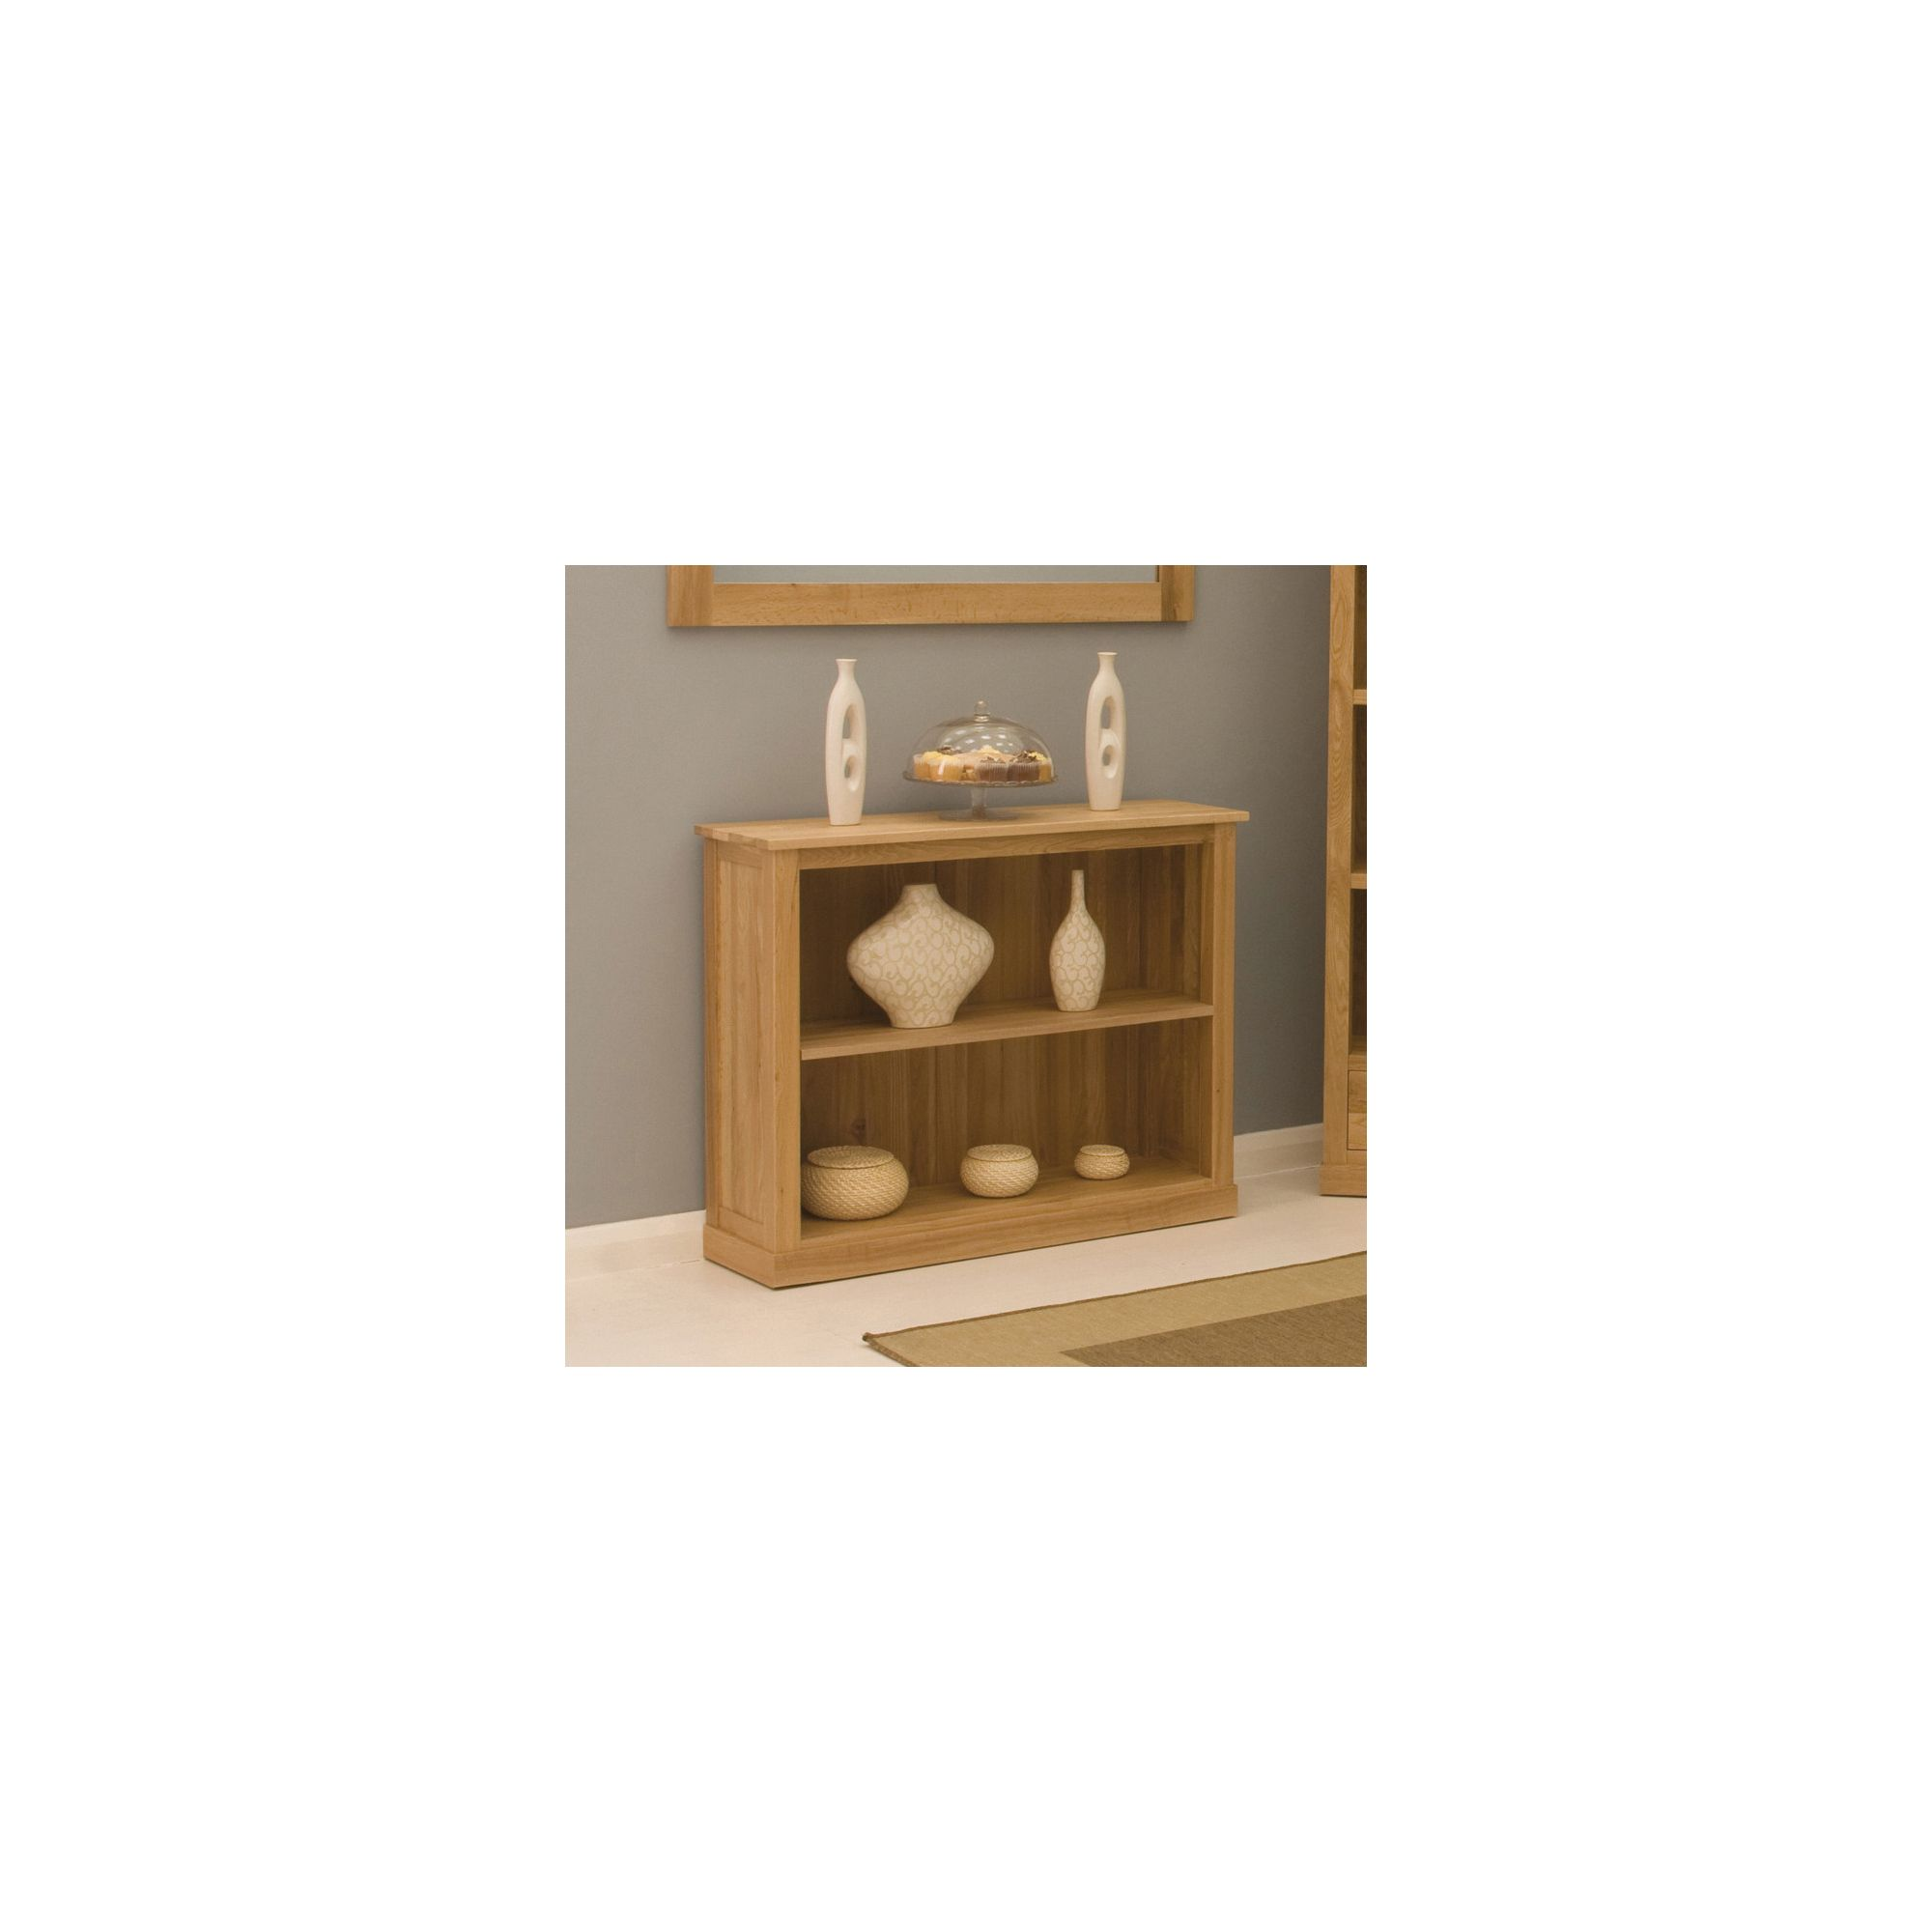 Baumhaus Mobel Oak Low Bookcase at Tesco Direct